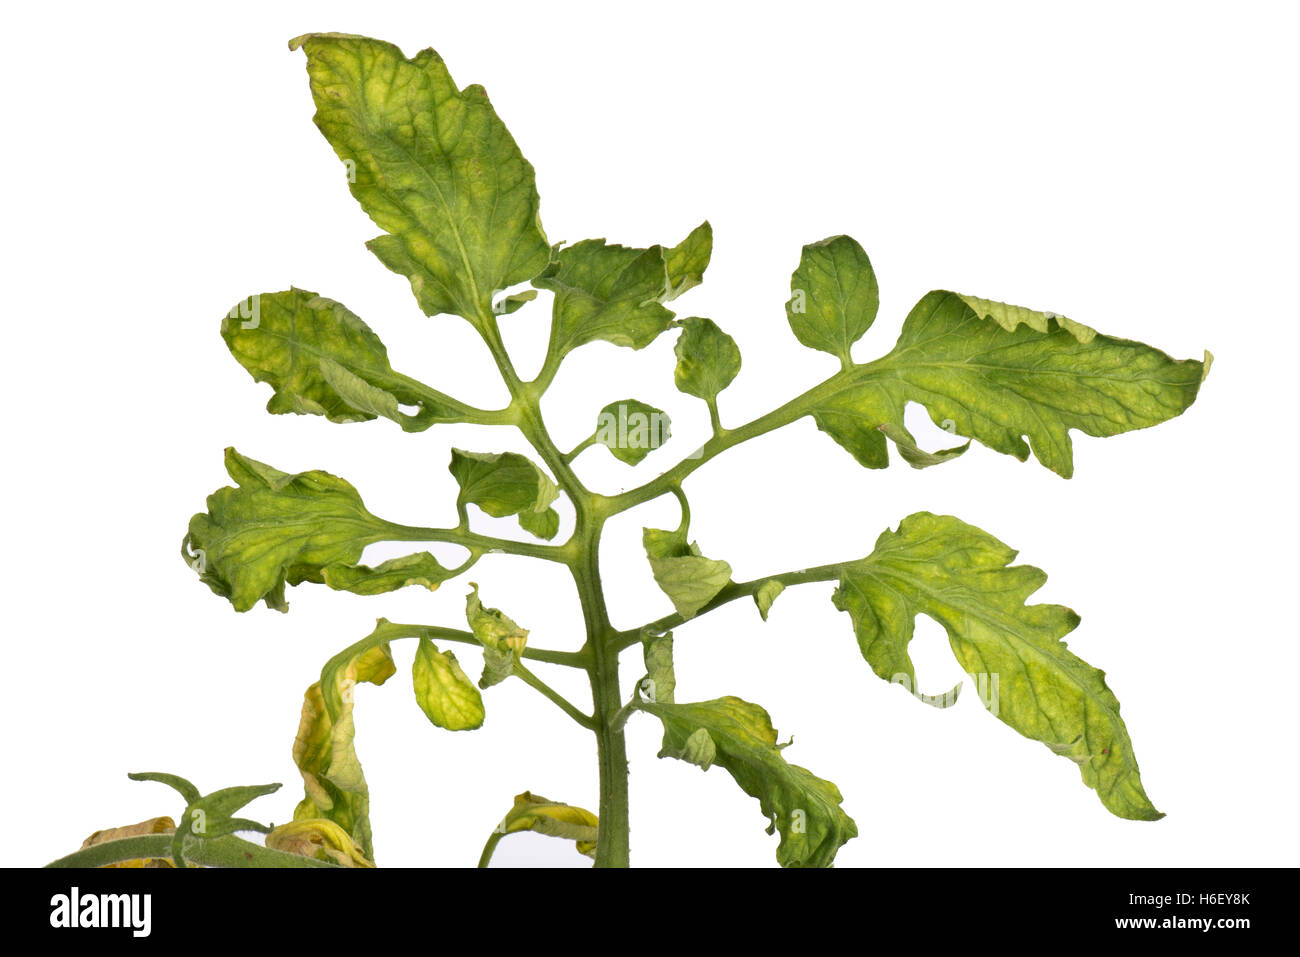 Tomato fern-leaf a symptom of TMV, CMV or PepMV virus on tomato plants - Stock Image